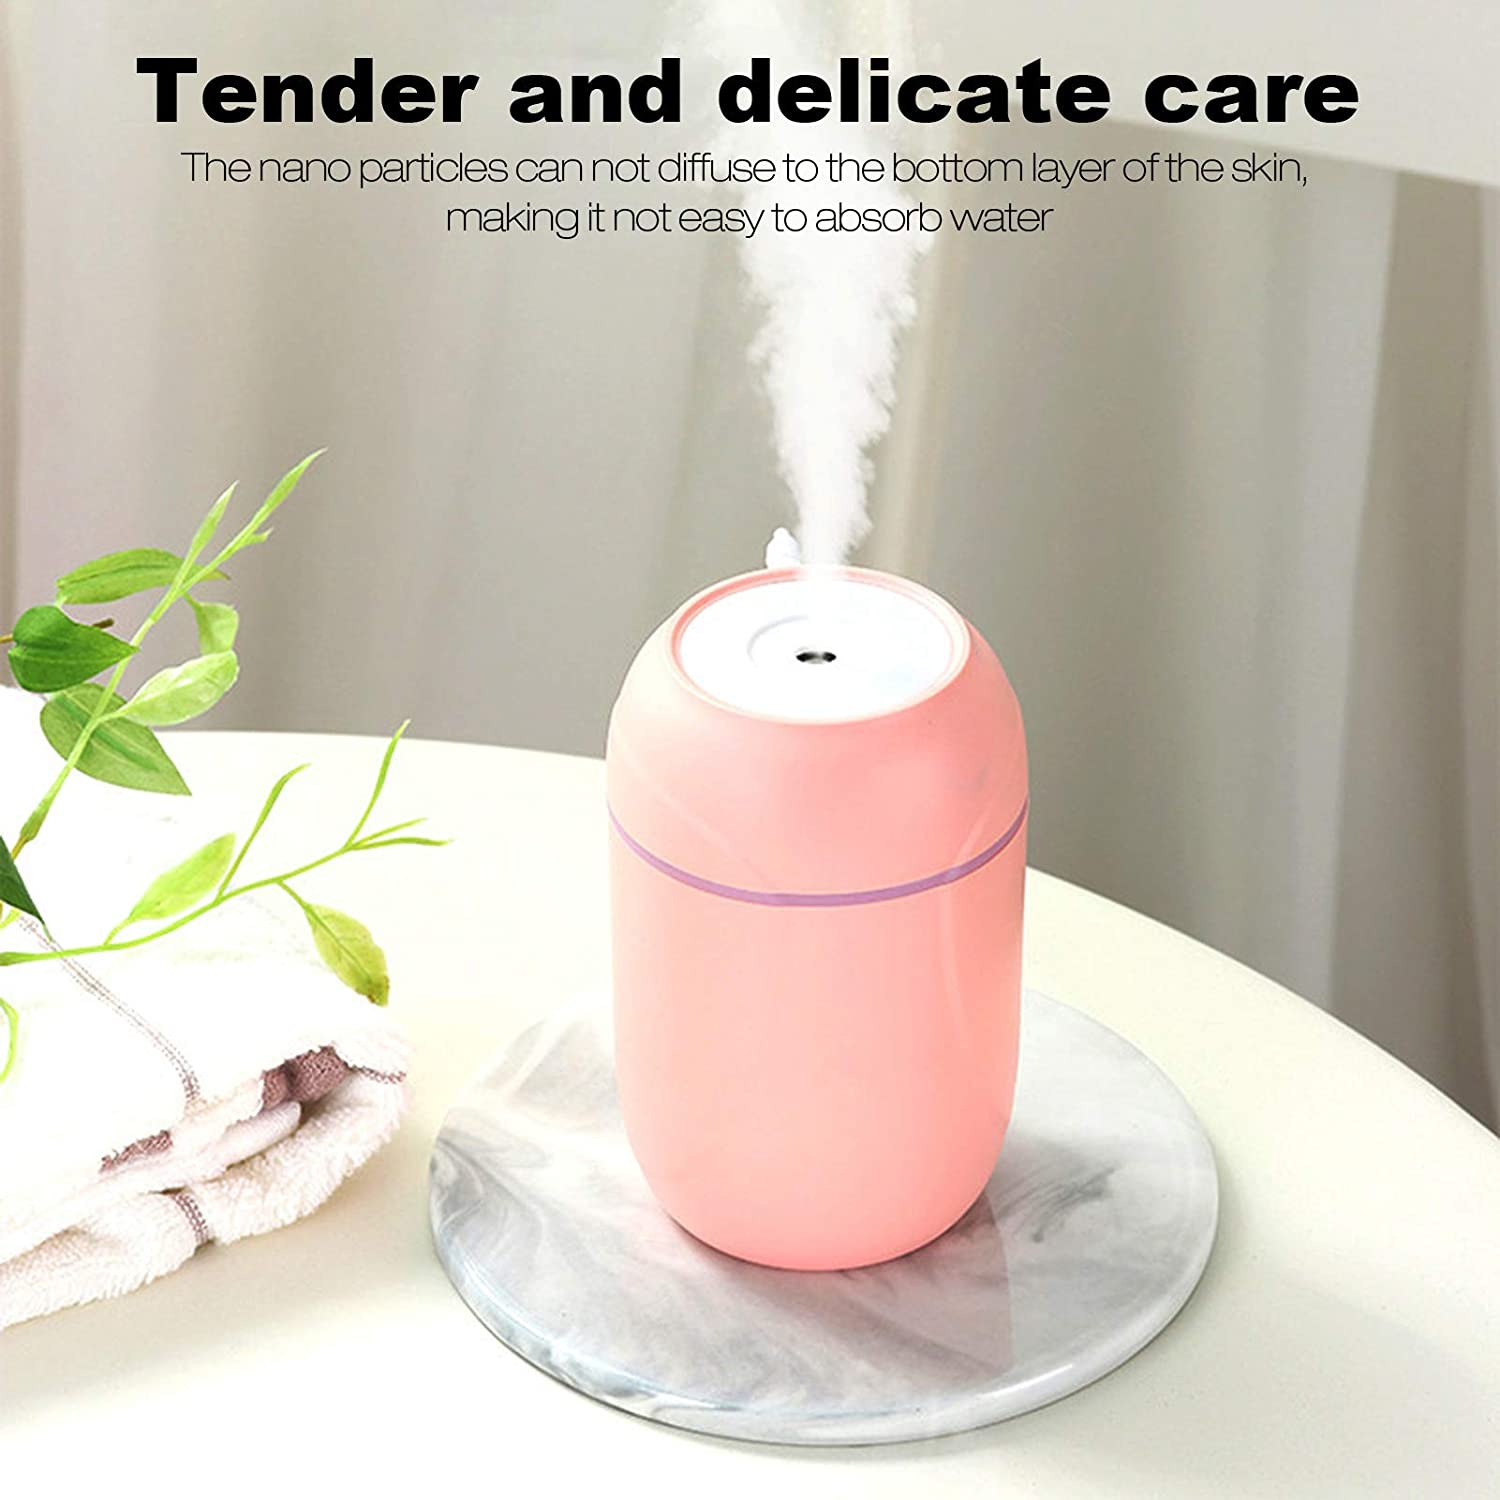 VISLONE 260ML Mini Air Humidifier Colorful Night Light Desktop Portable Aroma Essential Oil Diffuser Mist Maker for Car Home Office Use Bedroom